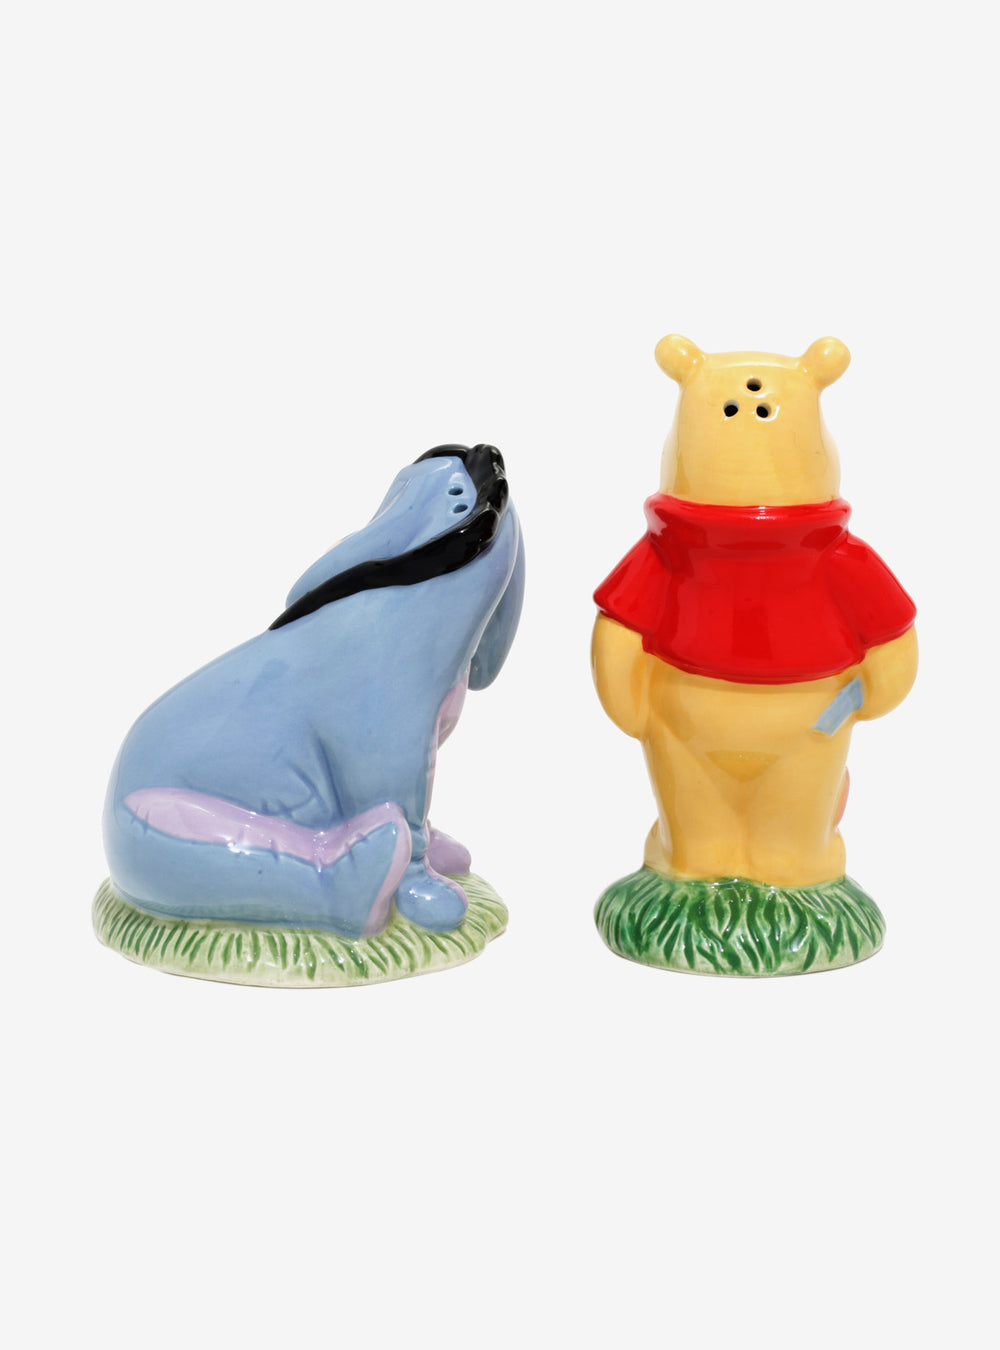 Disney Winnie the Pooh and Eeyore Salt and Pepper Shakers